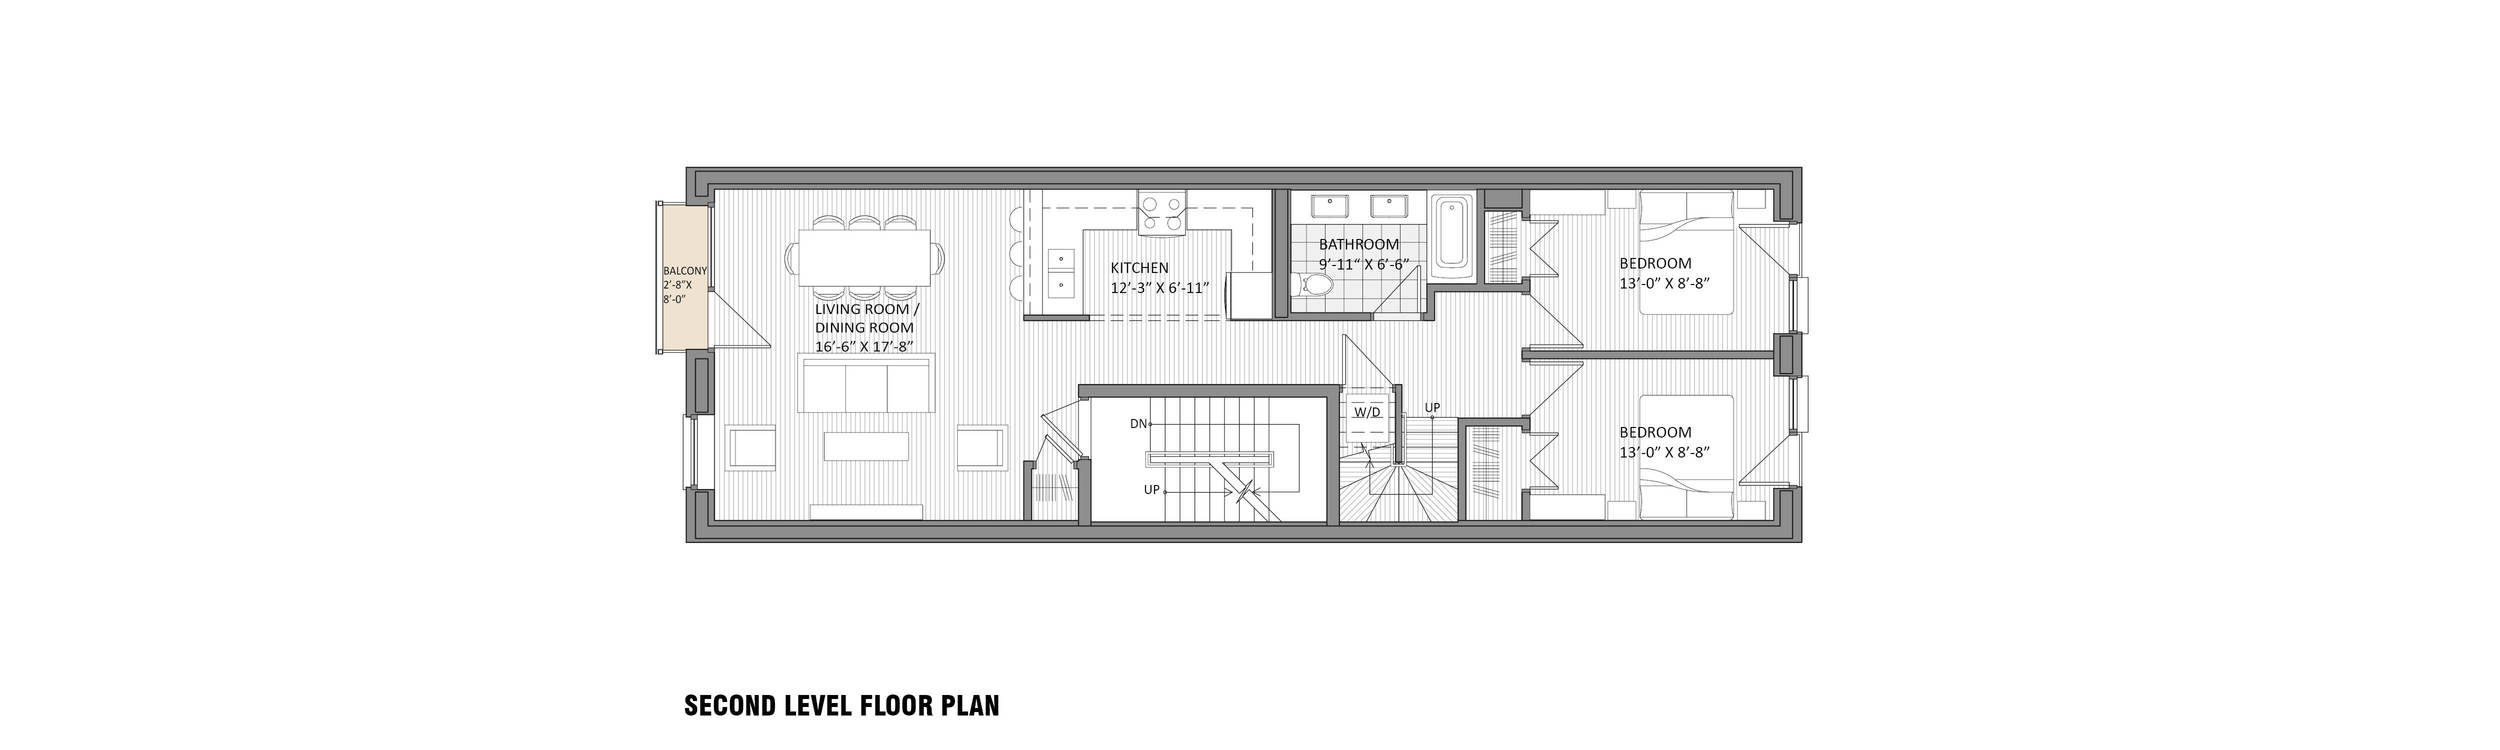 Floor Plan cropped_Website3.jpg